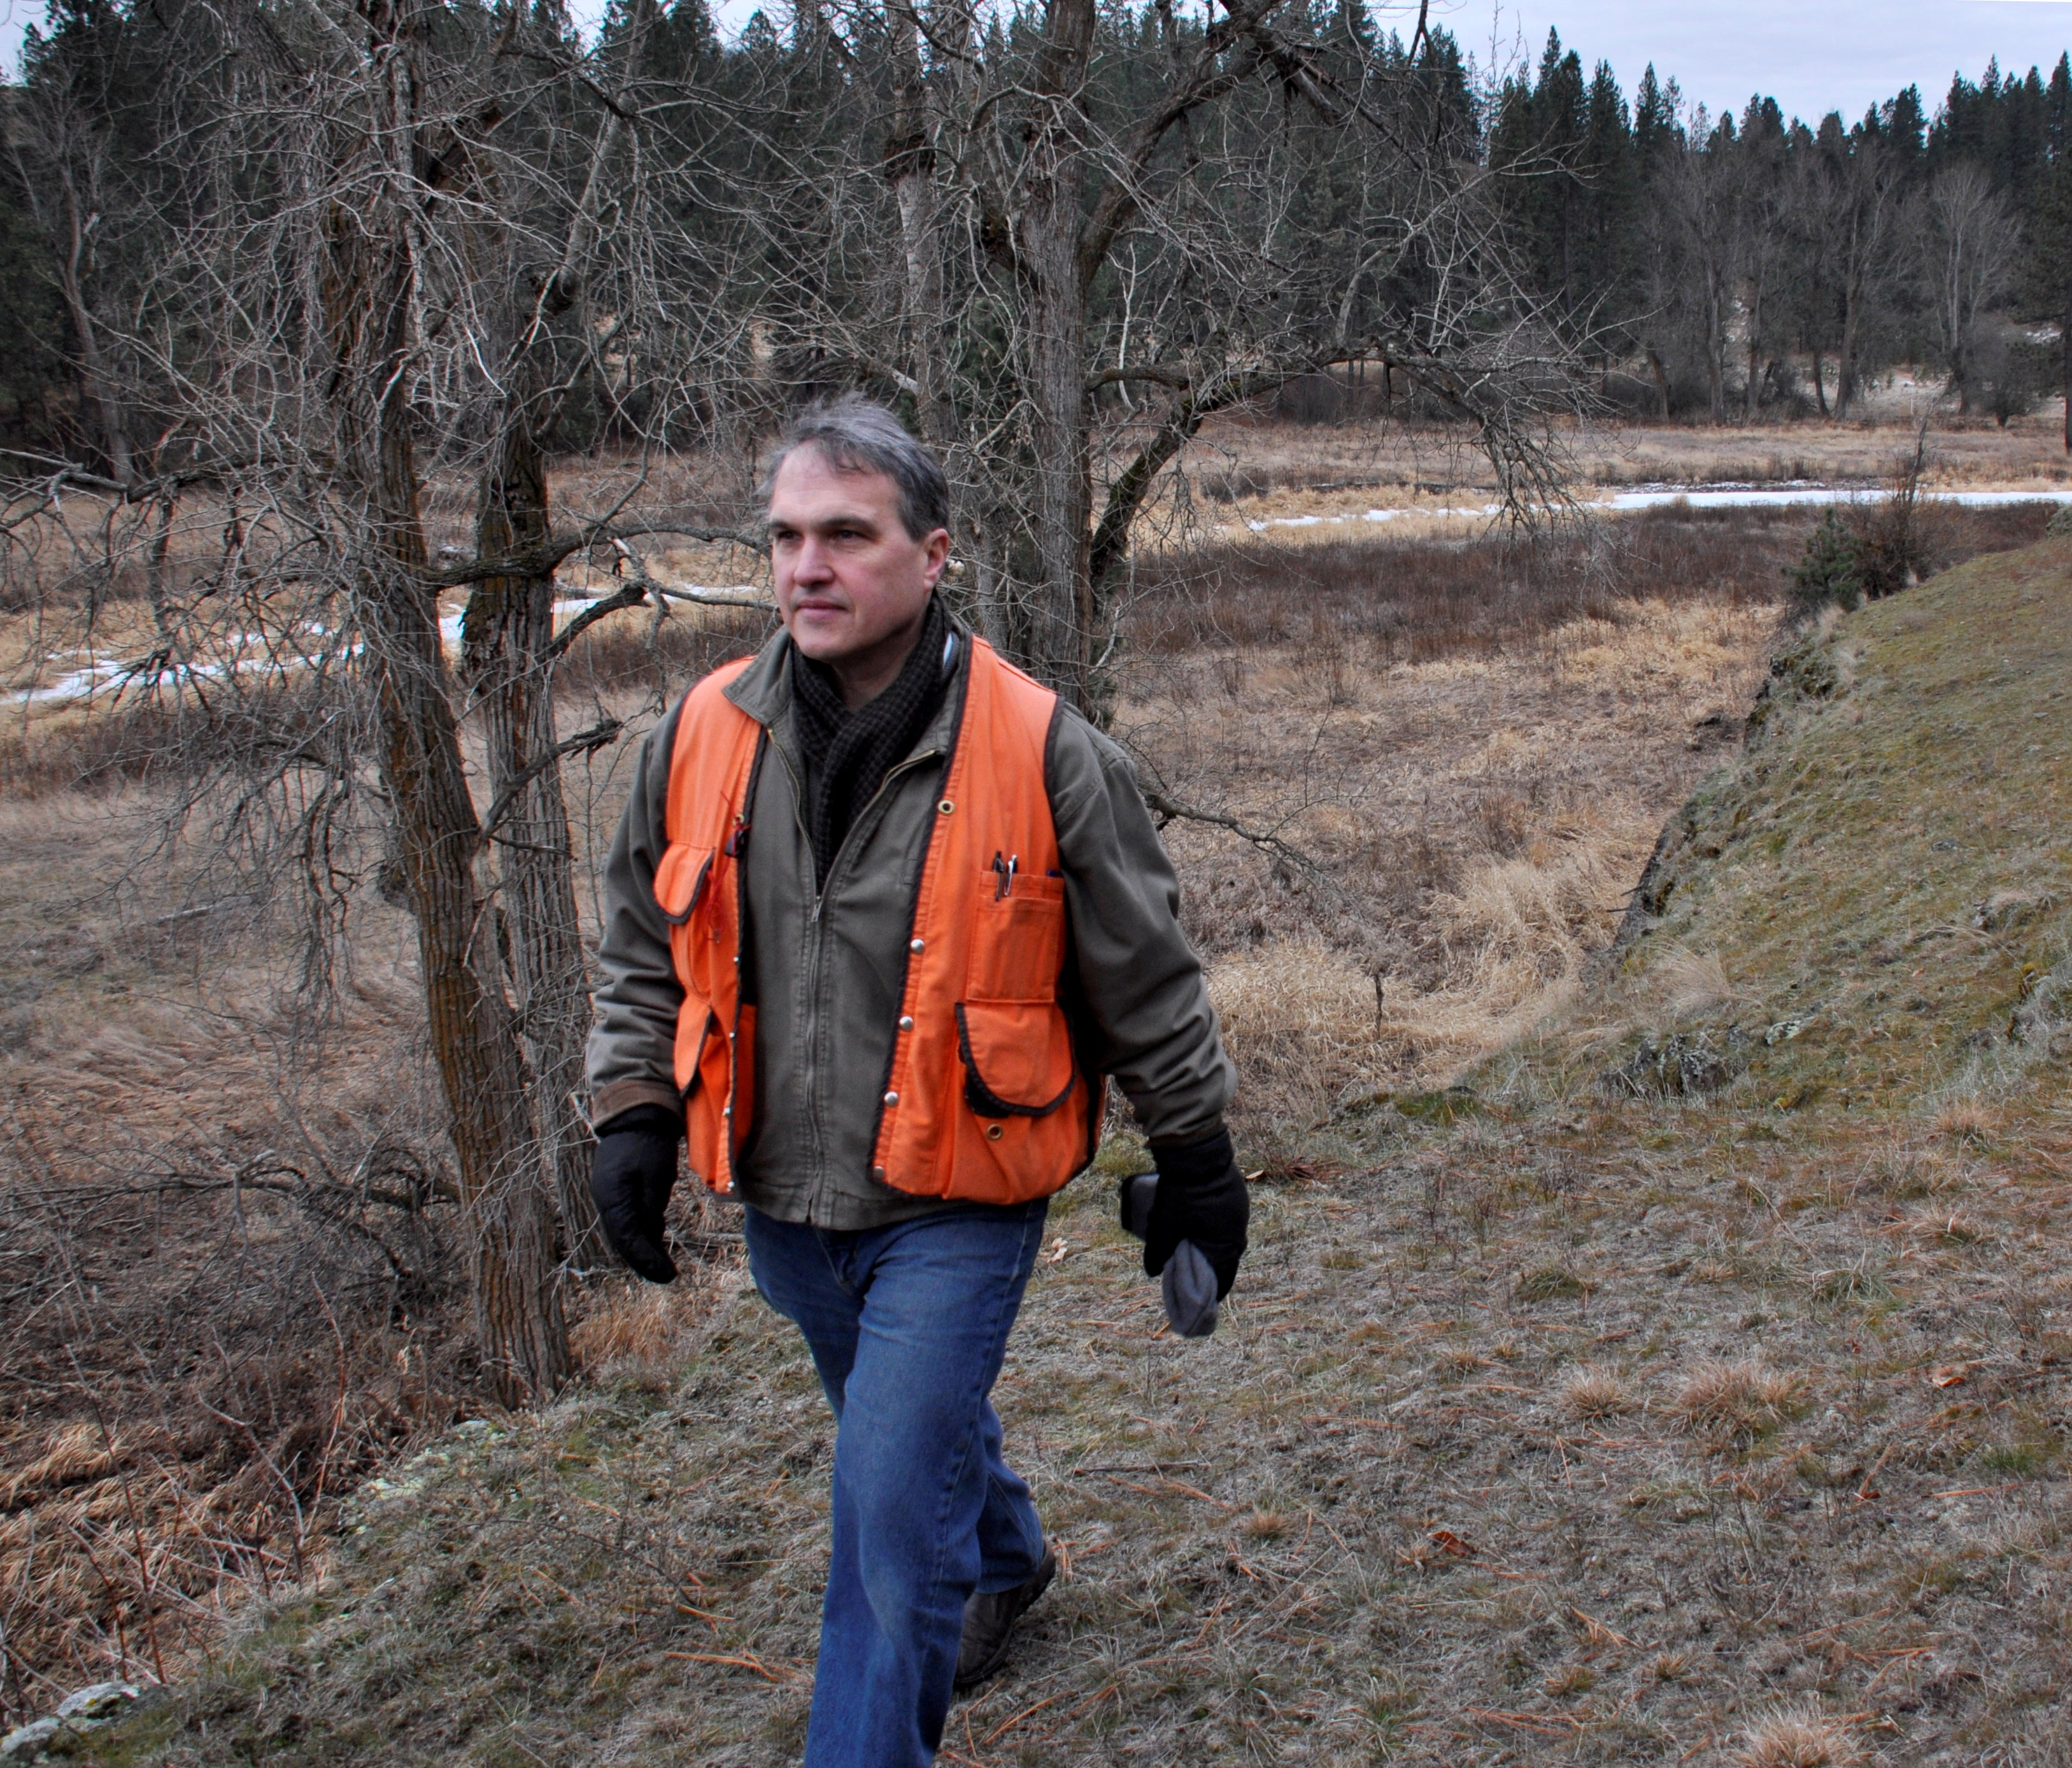 The Spokesman-Review | Outdoor and Nature | OUTDOORS DUCK ...